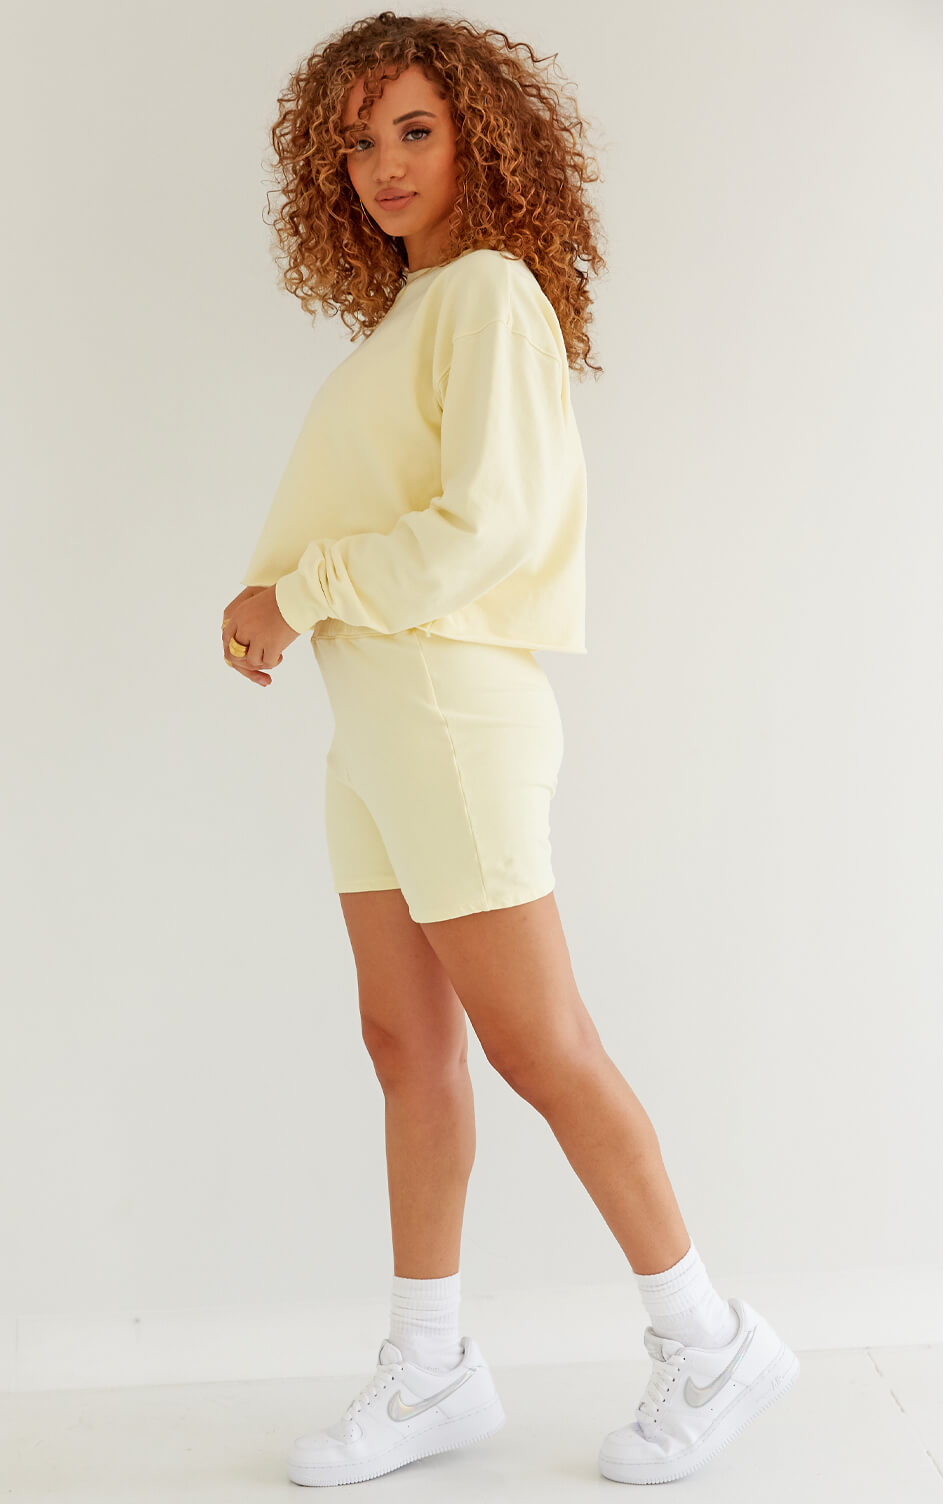 shop-dana-scott-sweet-like-candy-collection-pale-yellow-lemon-drop-fleece-scott-sweatshort